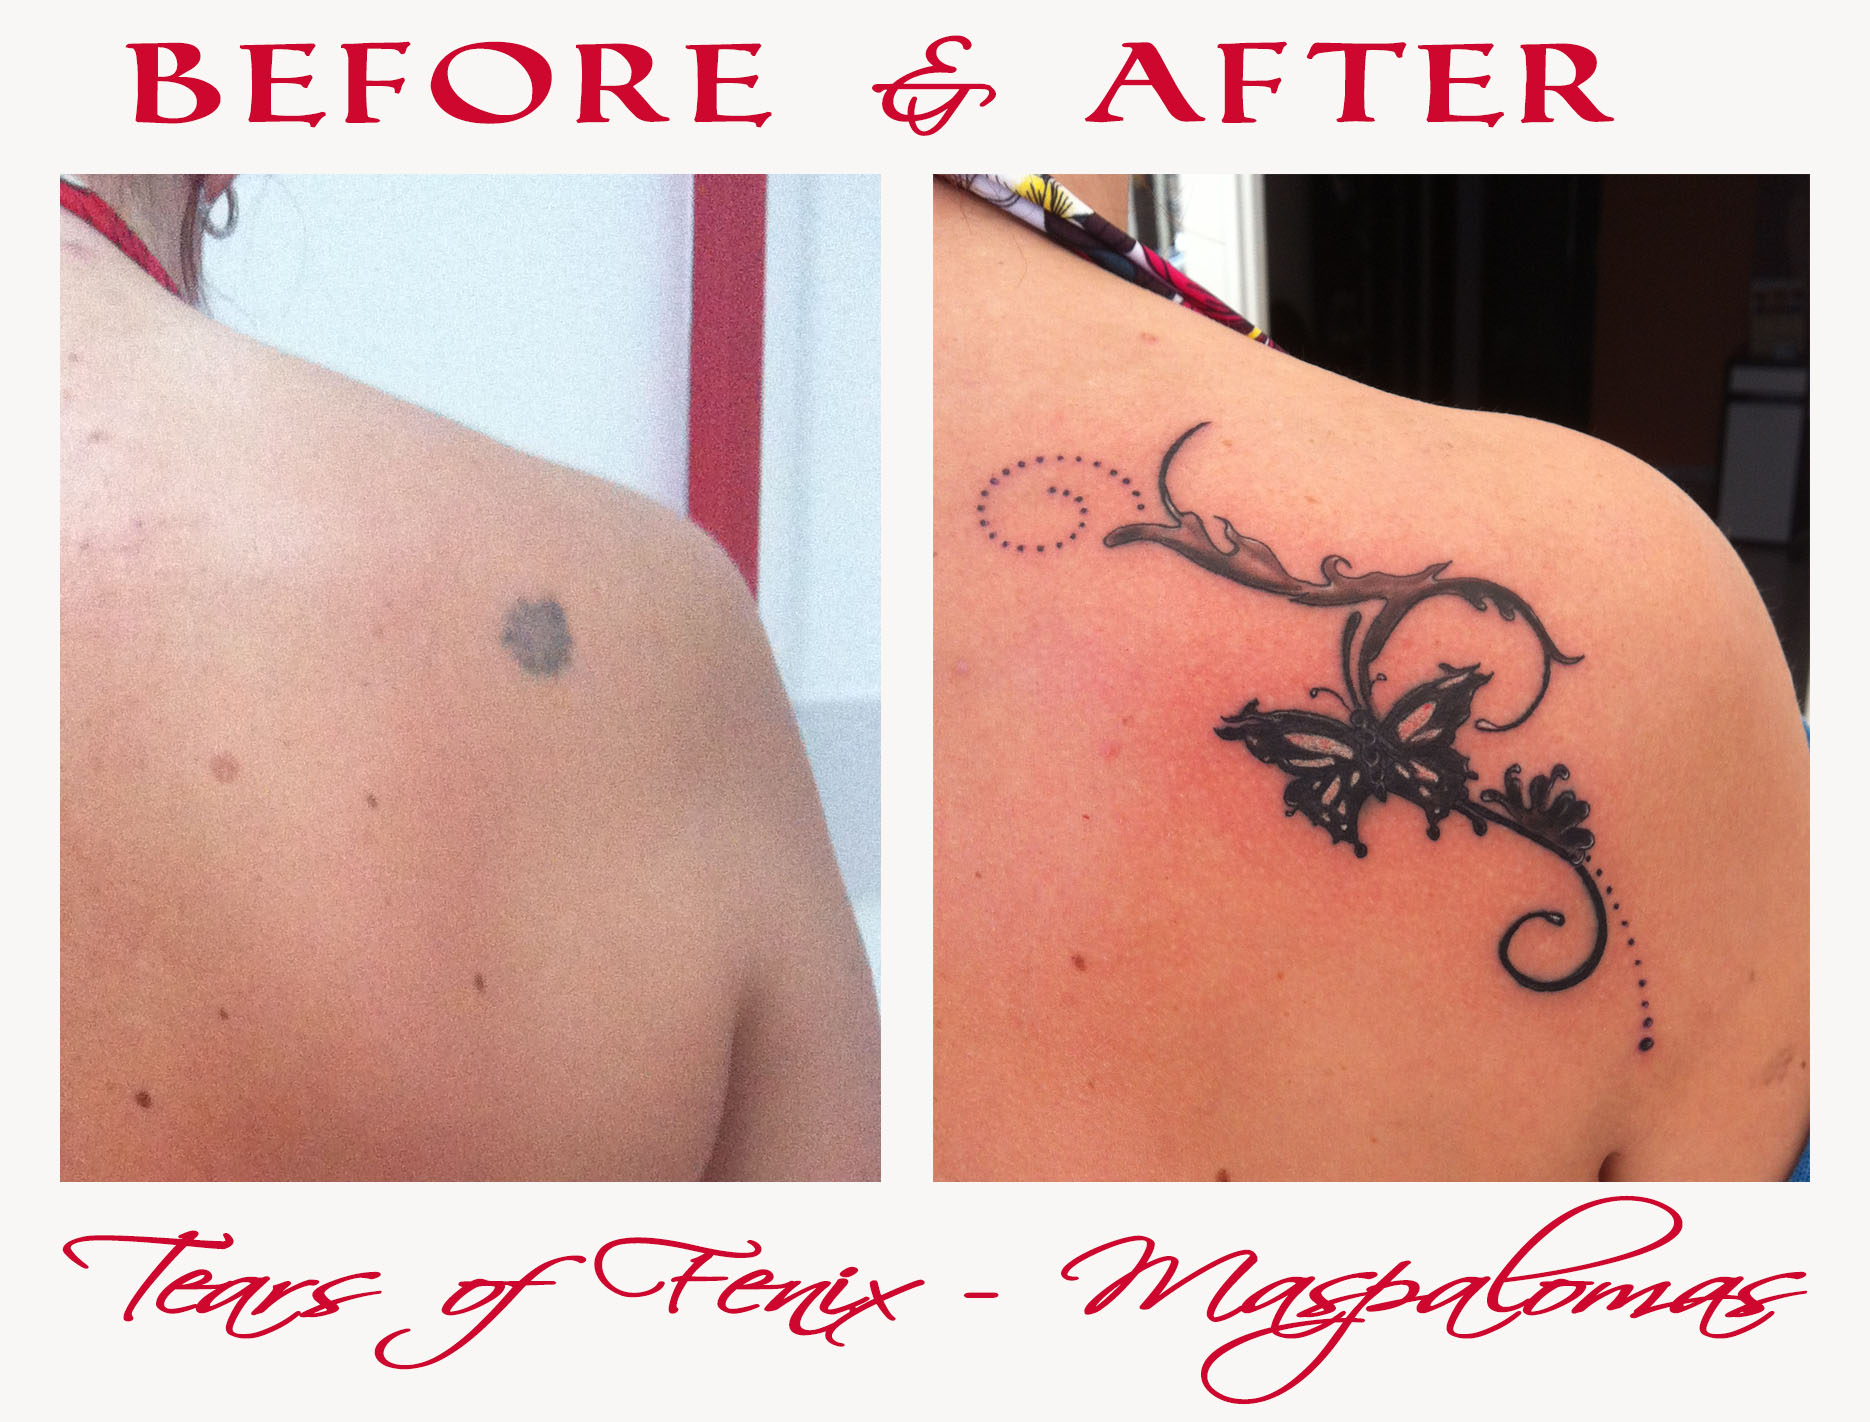 Tatouage Maspalomas Tears of Fenix